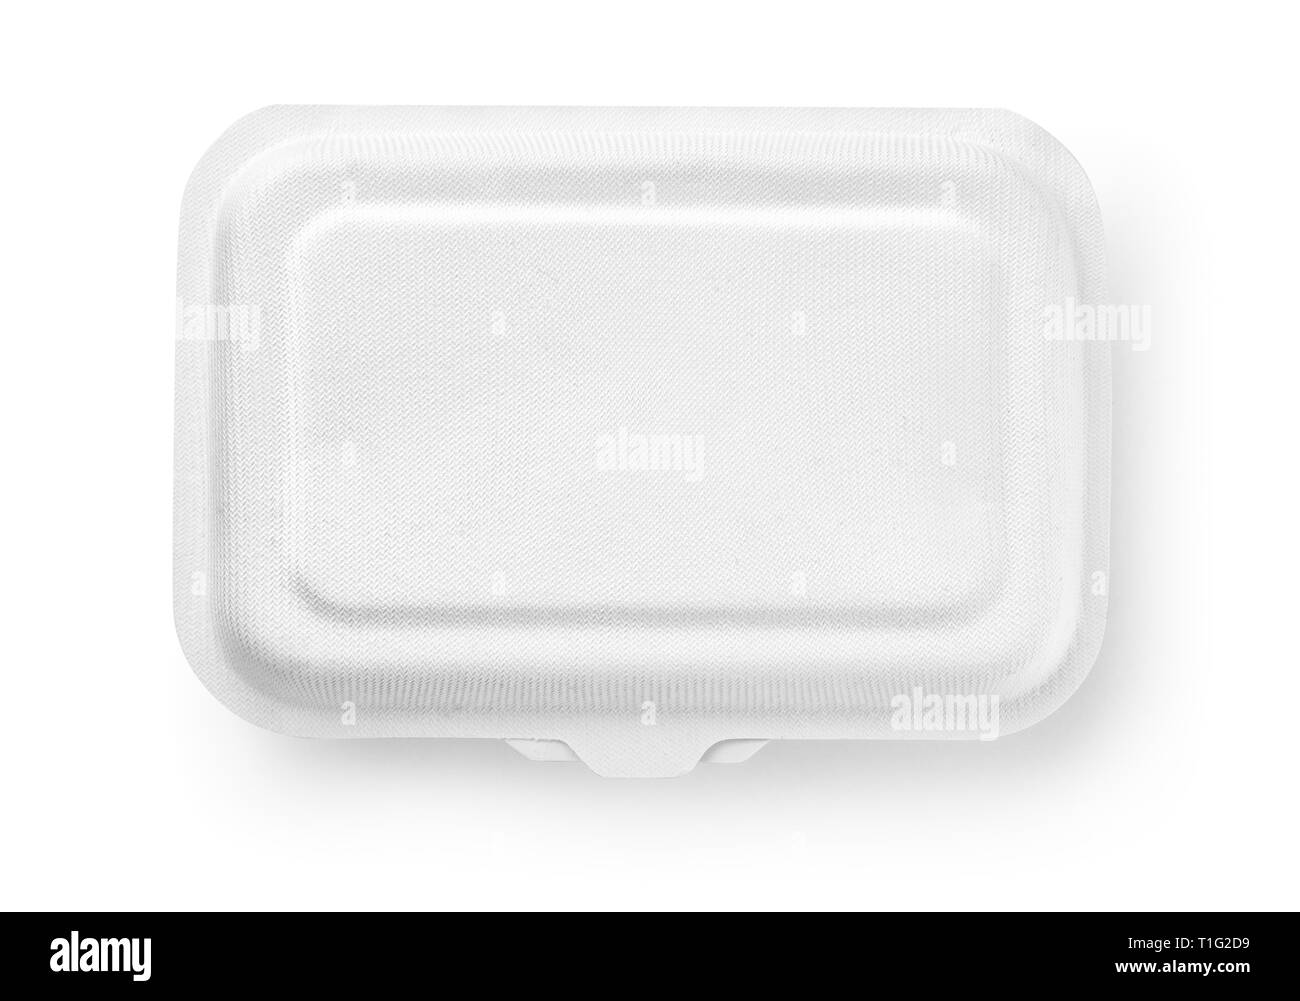 Top view of biodegradable paper food box isolated on white - Stock Image